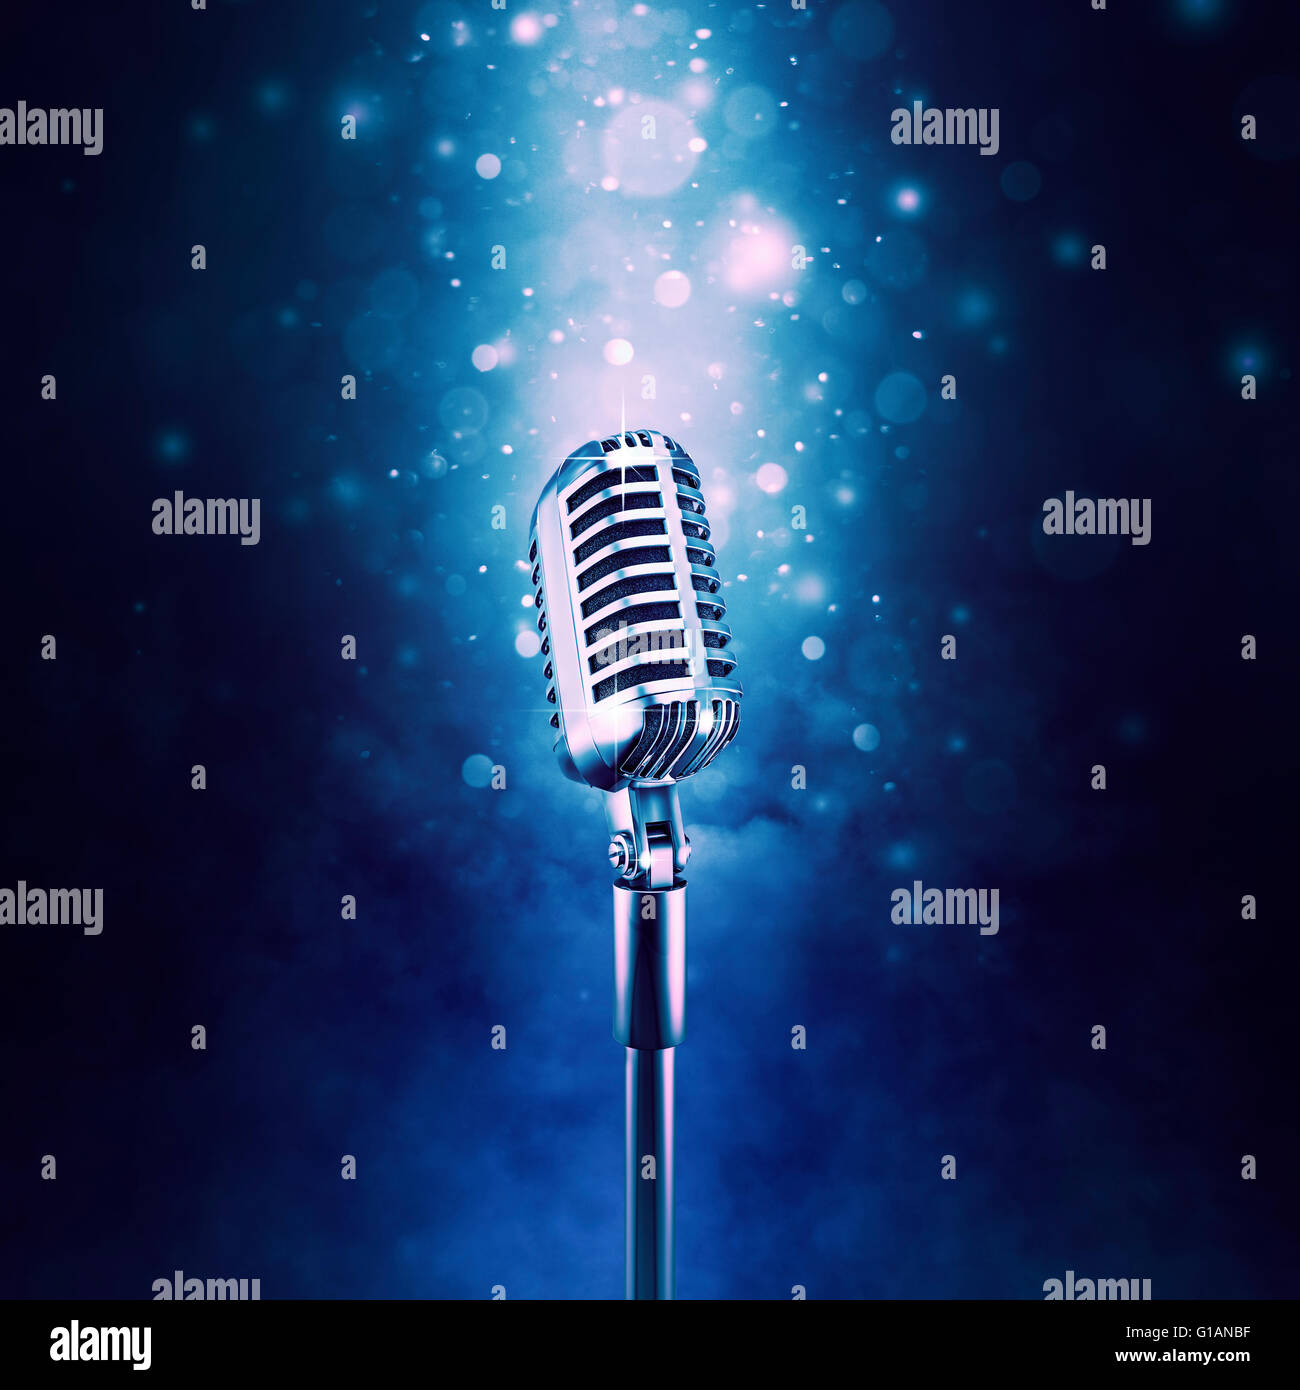 Retro microphone highlighted / 3D illustration of old fashioned classic microphone on sparkly bokeh background - Stock Image